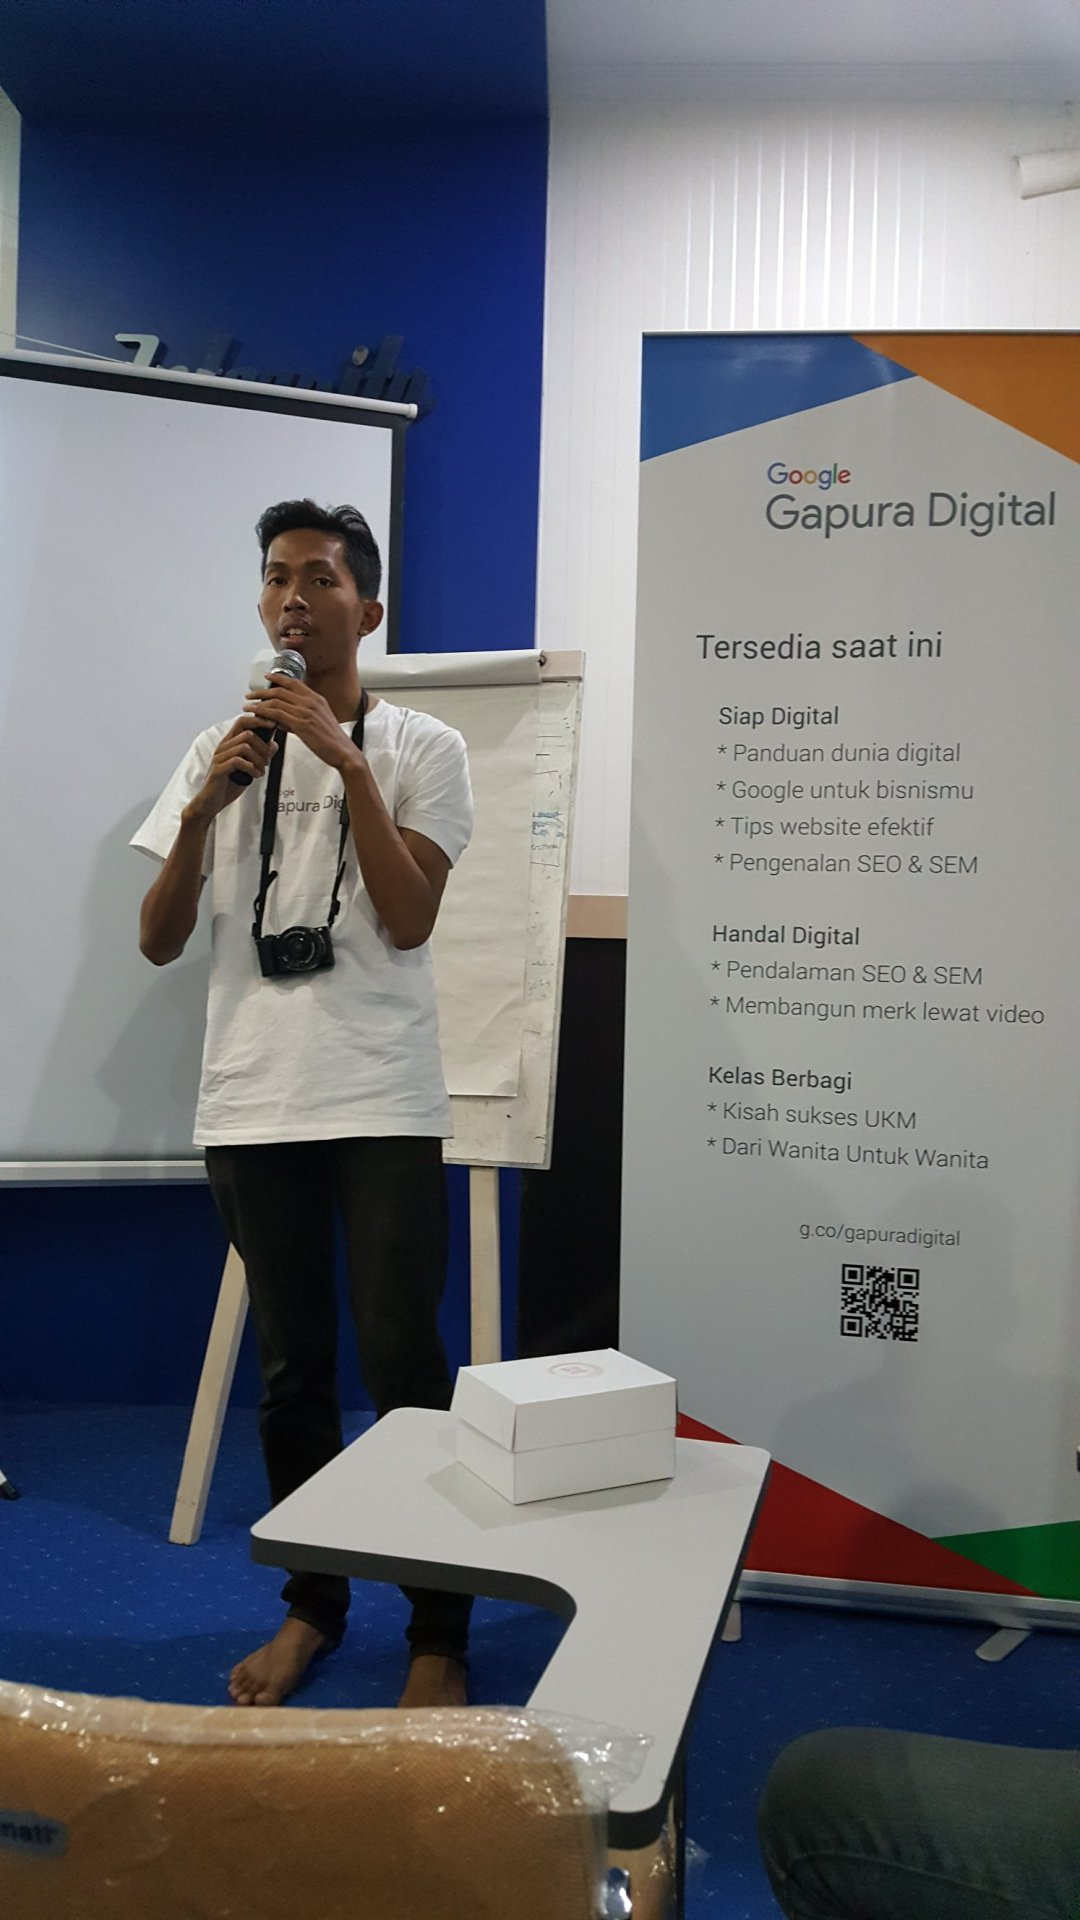 Gapura Digital Google UKM di Indonesia, gapura digital, google gapura digital